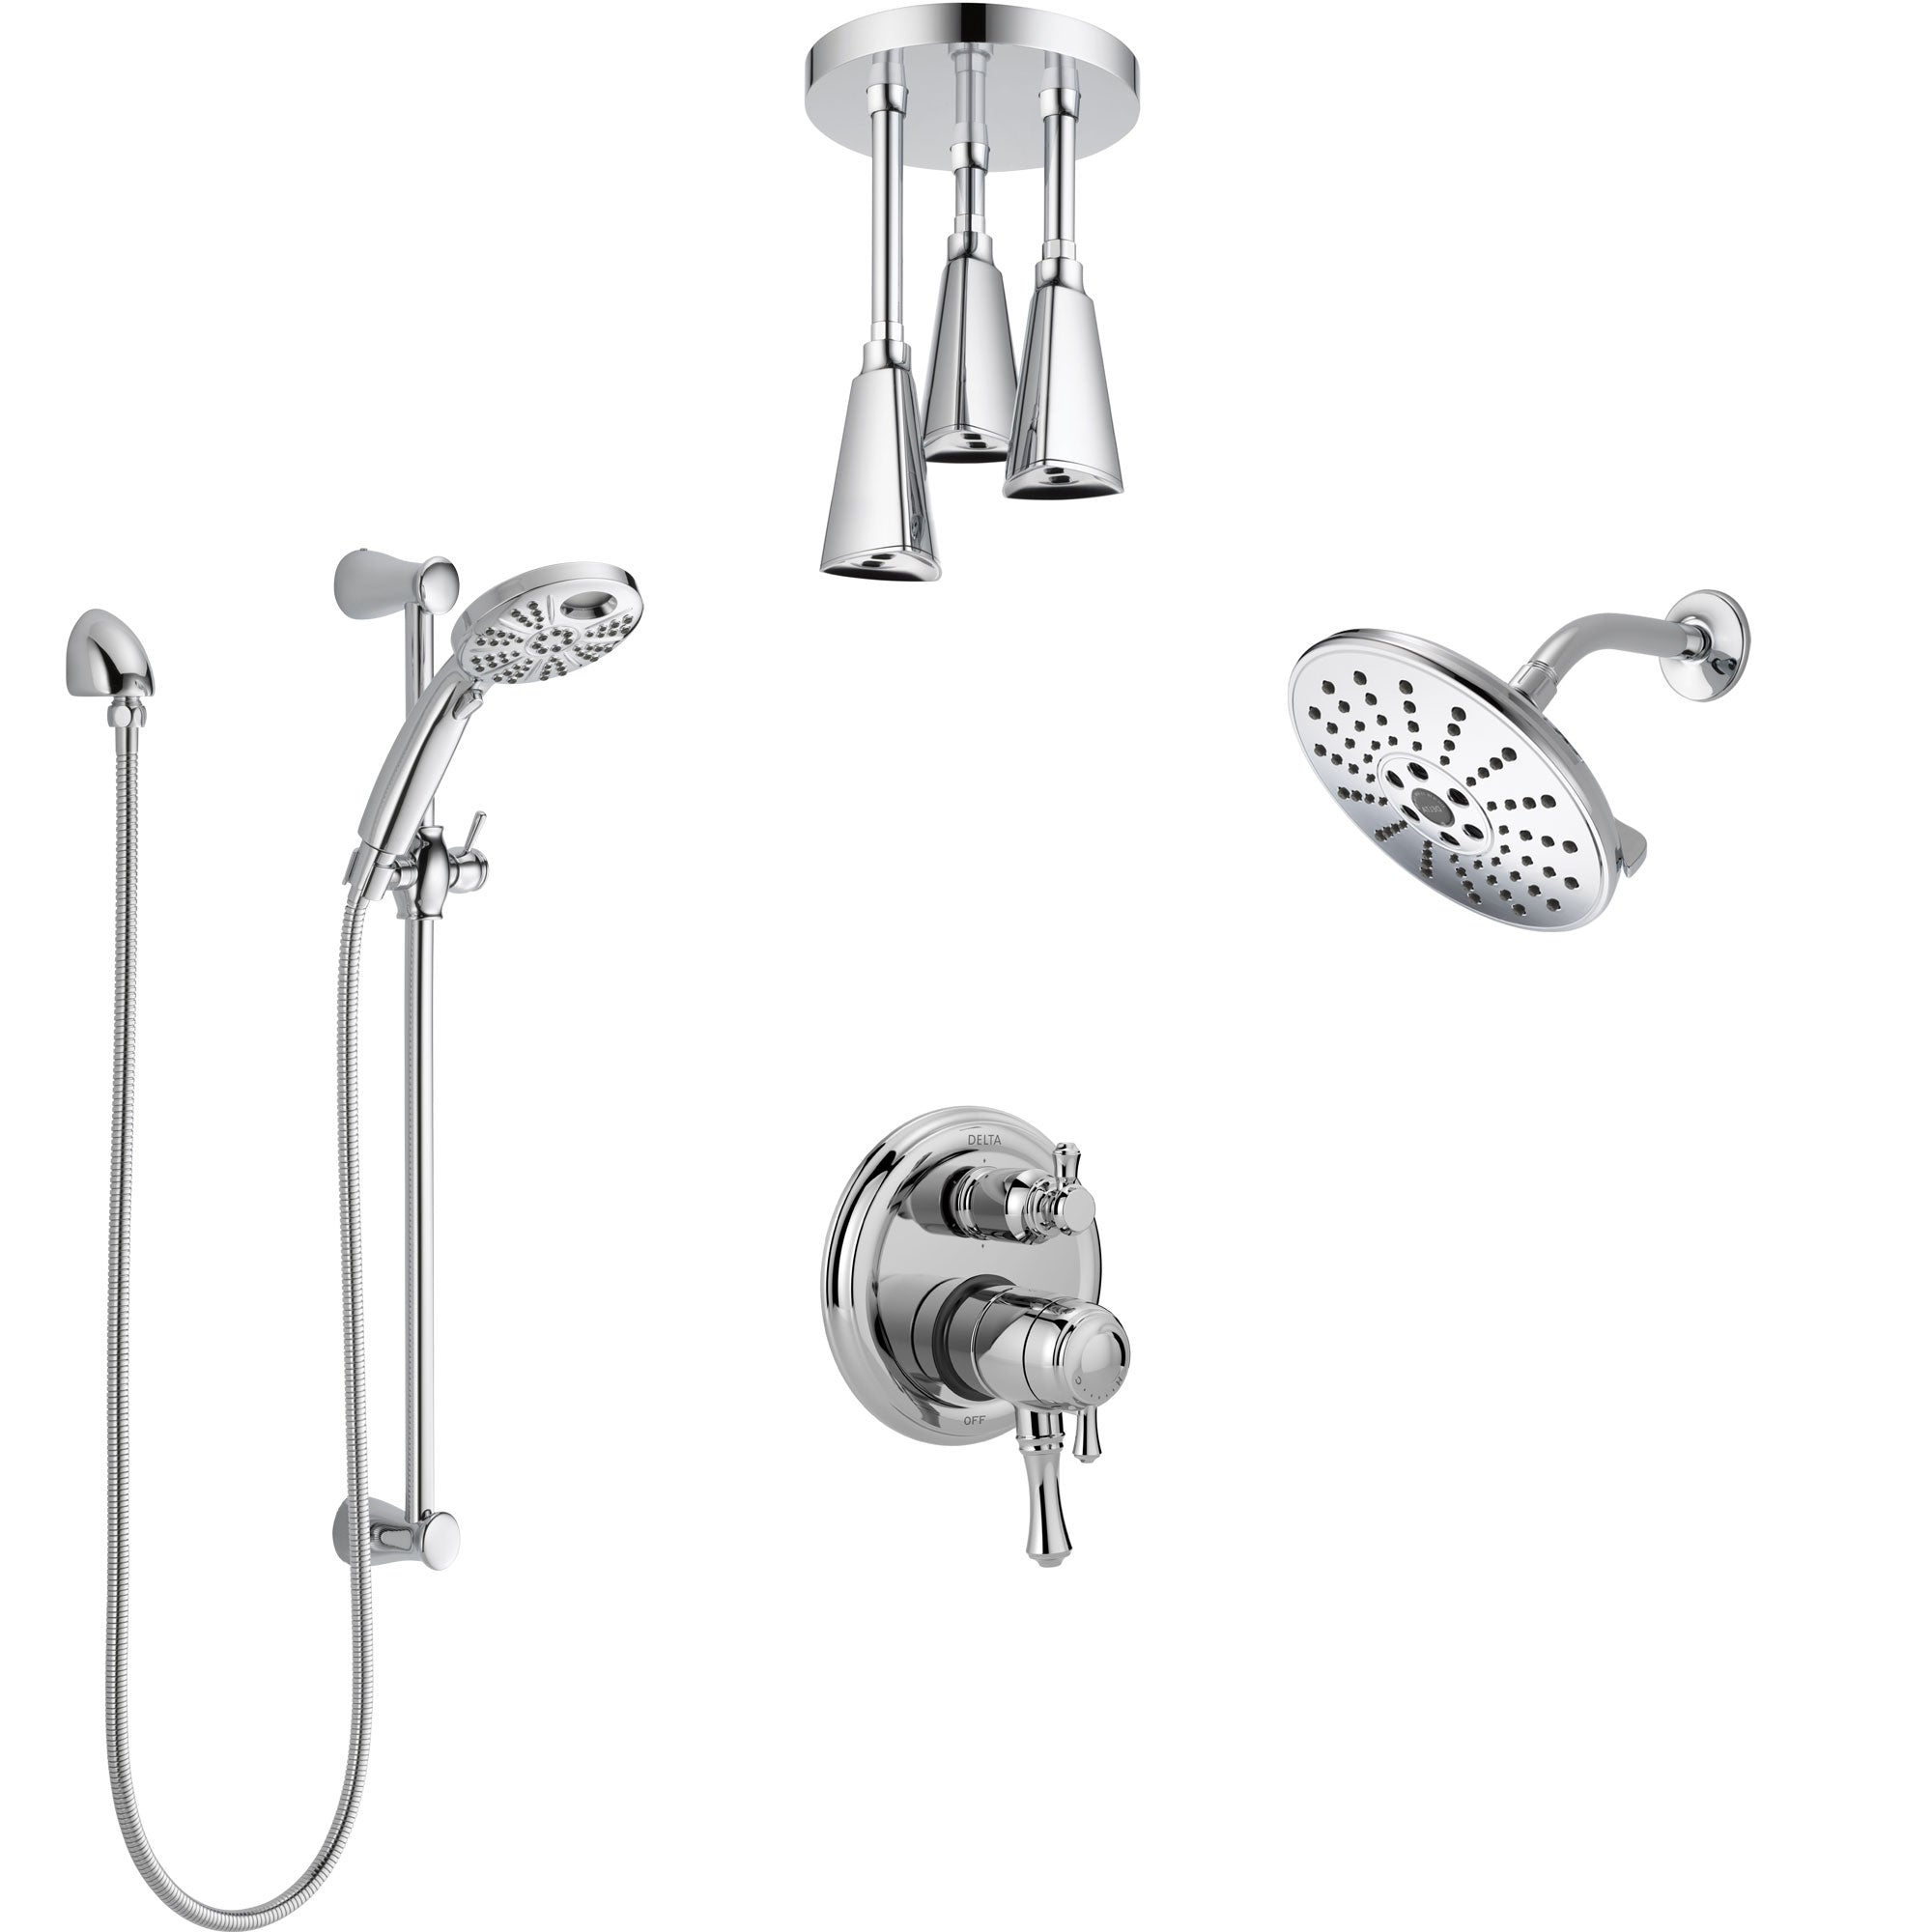 Delta Cassidy Chrome Shower System with Dual Control Handle, Integrated Diverter, Showerhead, Ceiling Mount Showerhead, & Temp2O Hand Shower SS2799710